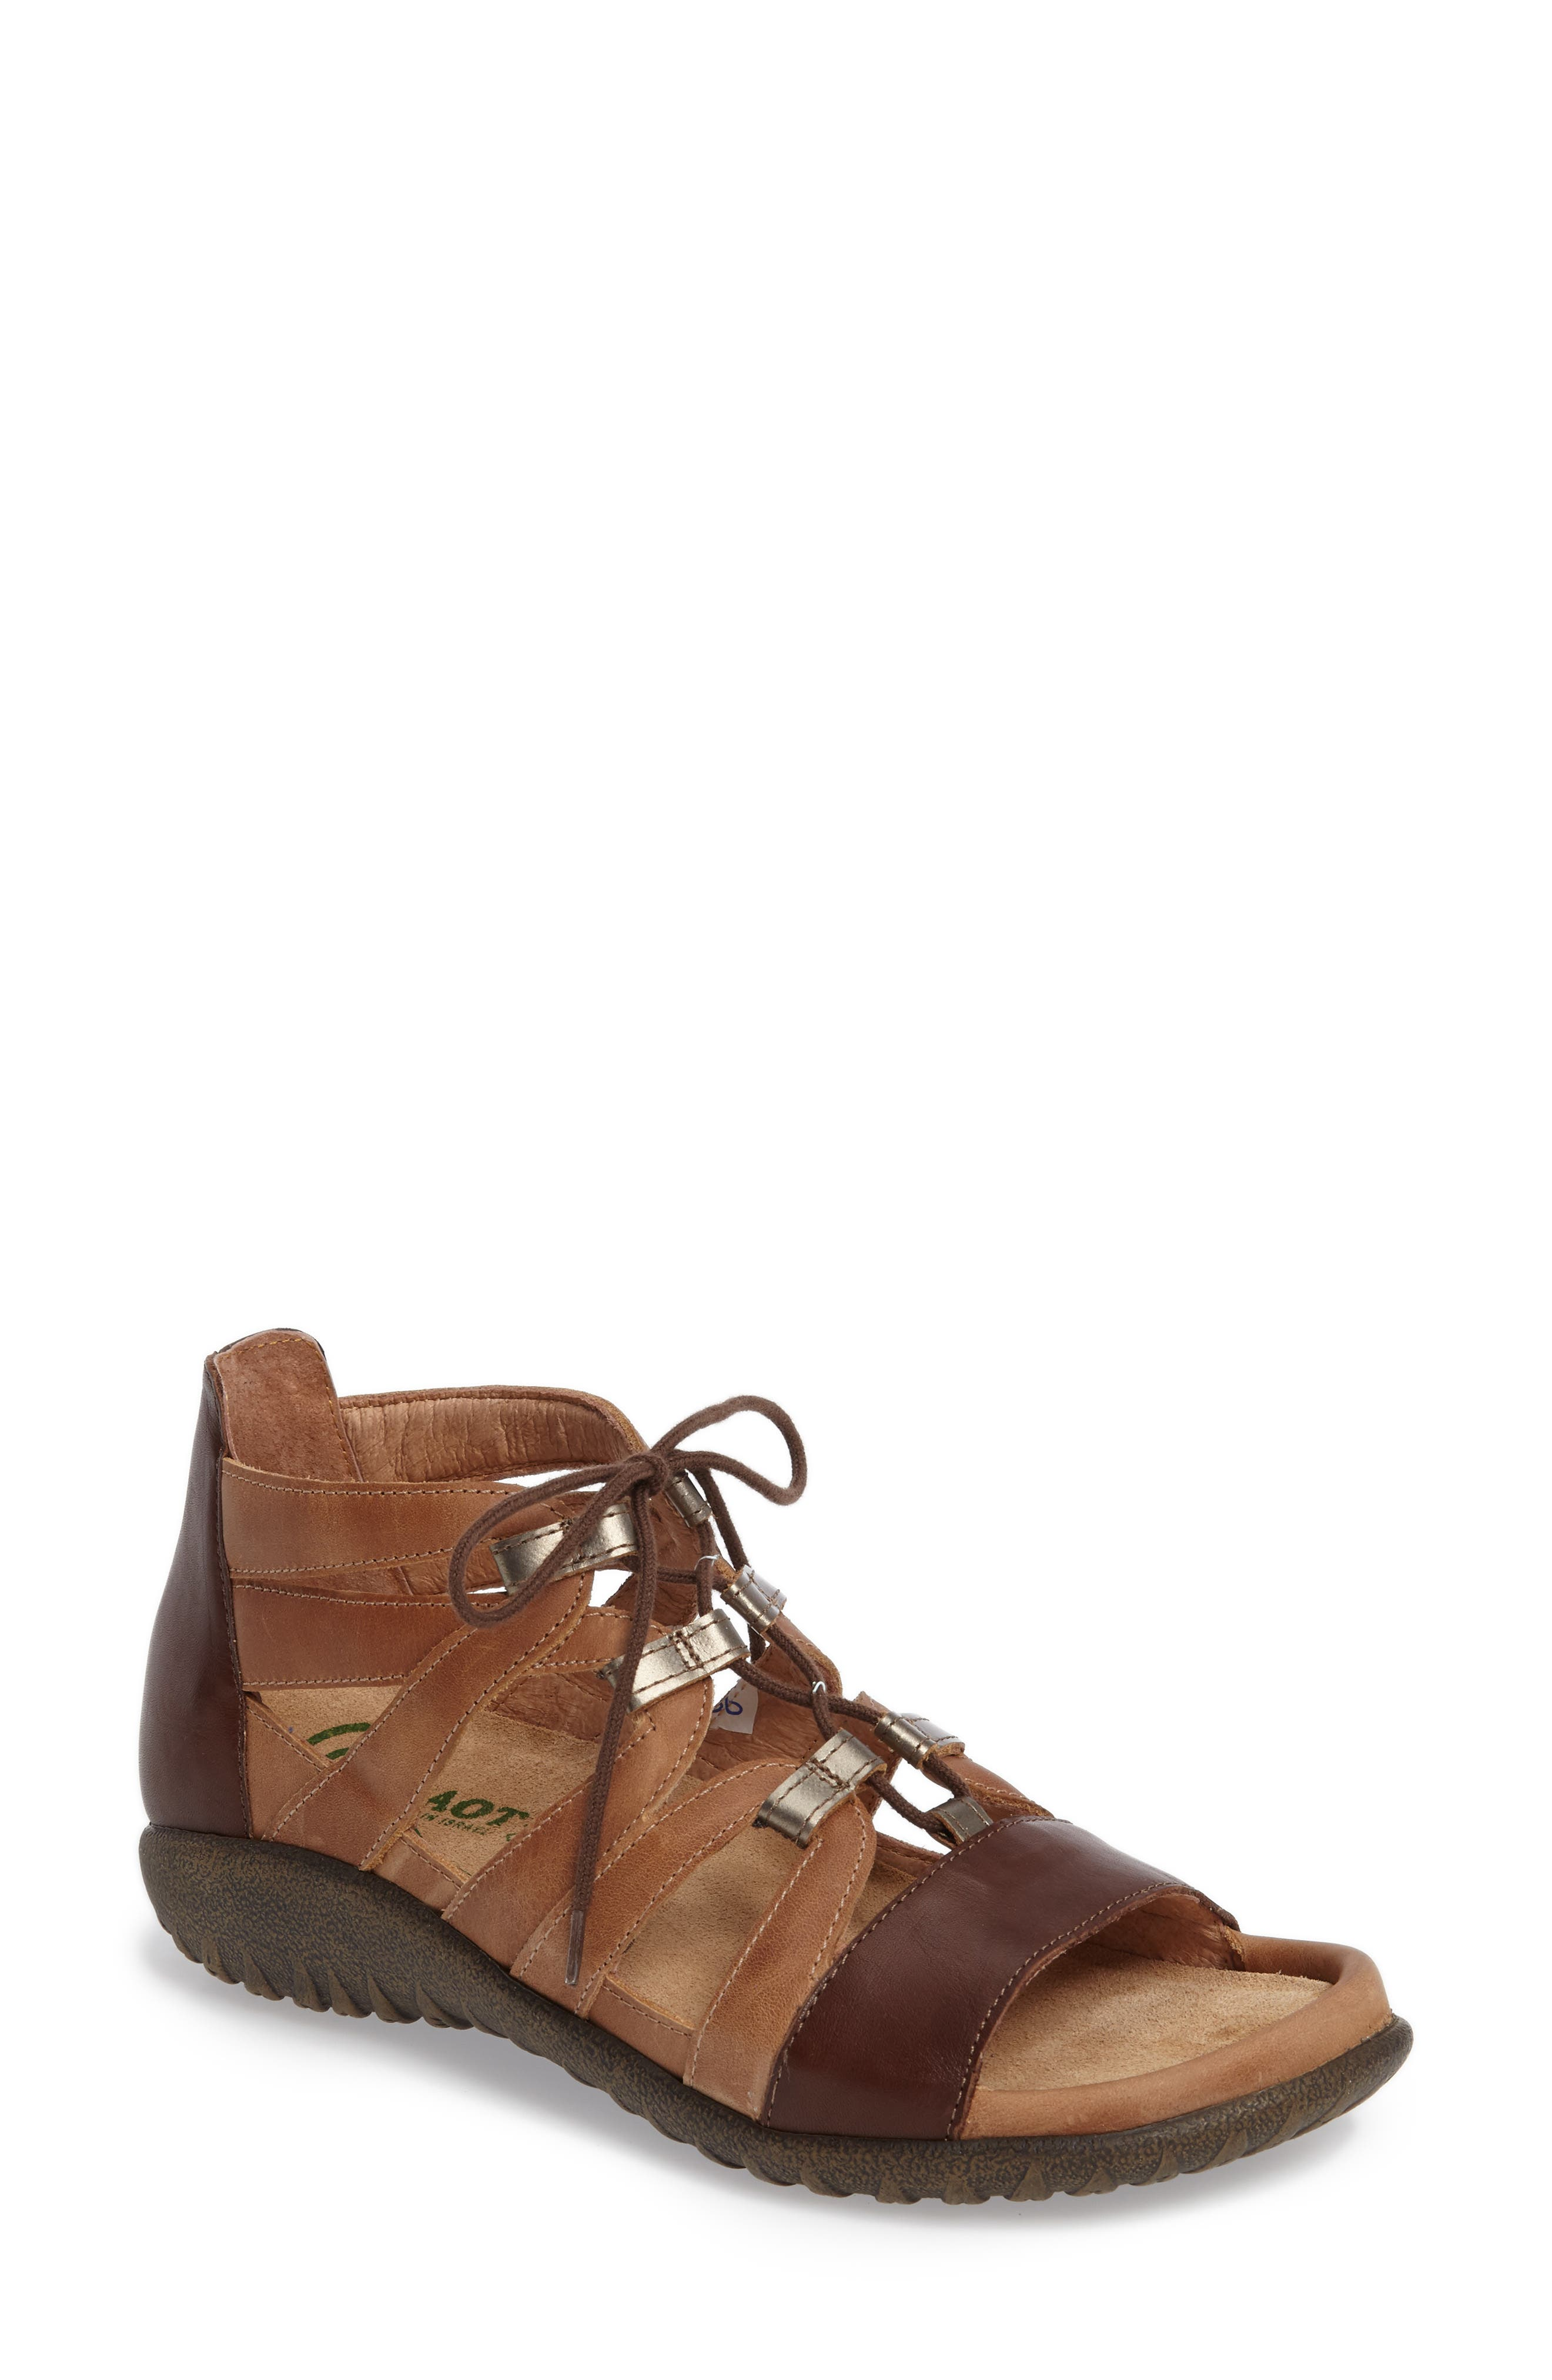 Selo Sandal,                         Main,                         color, BROWN/ PEWTER LEATHER